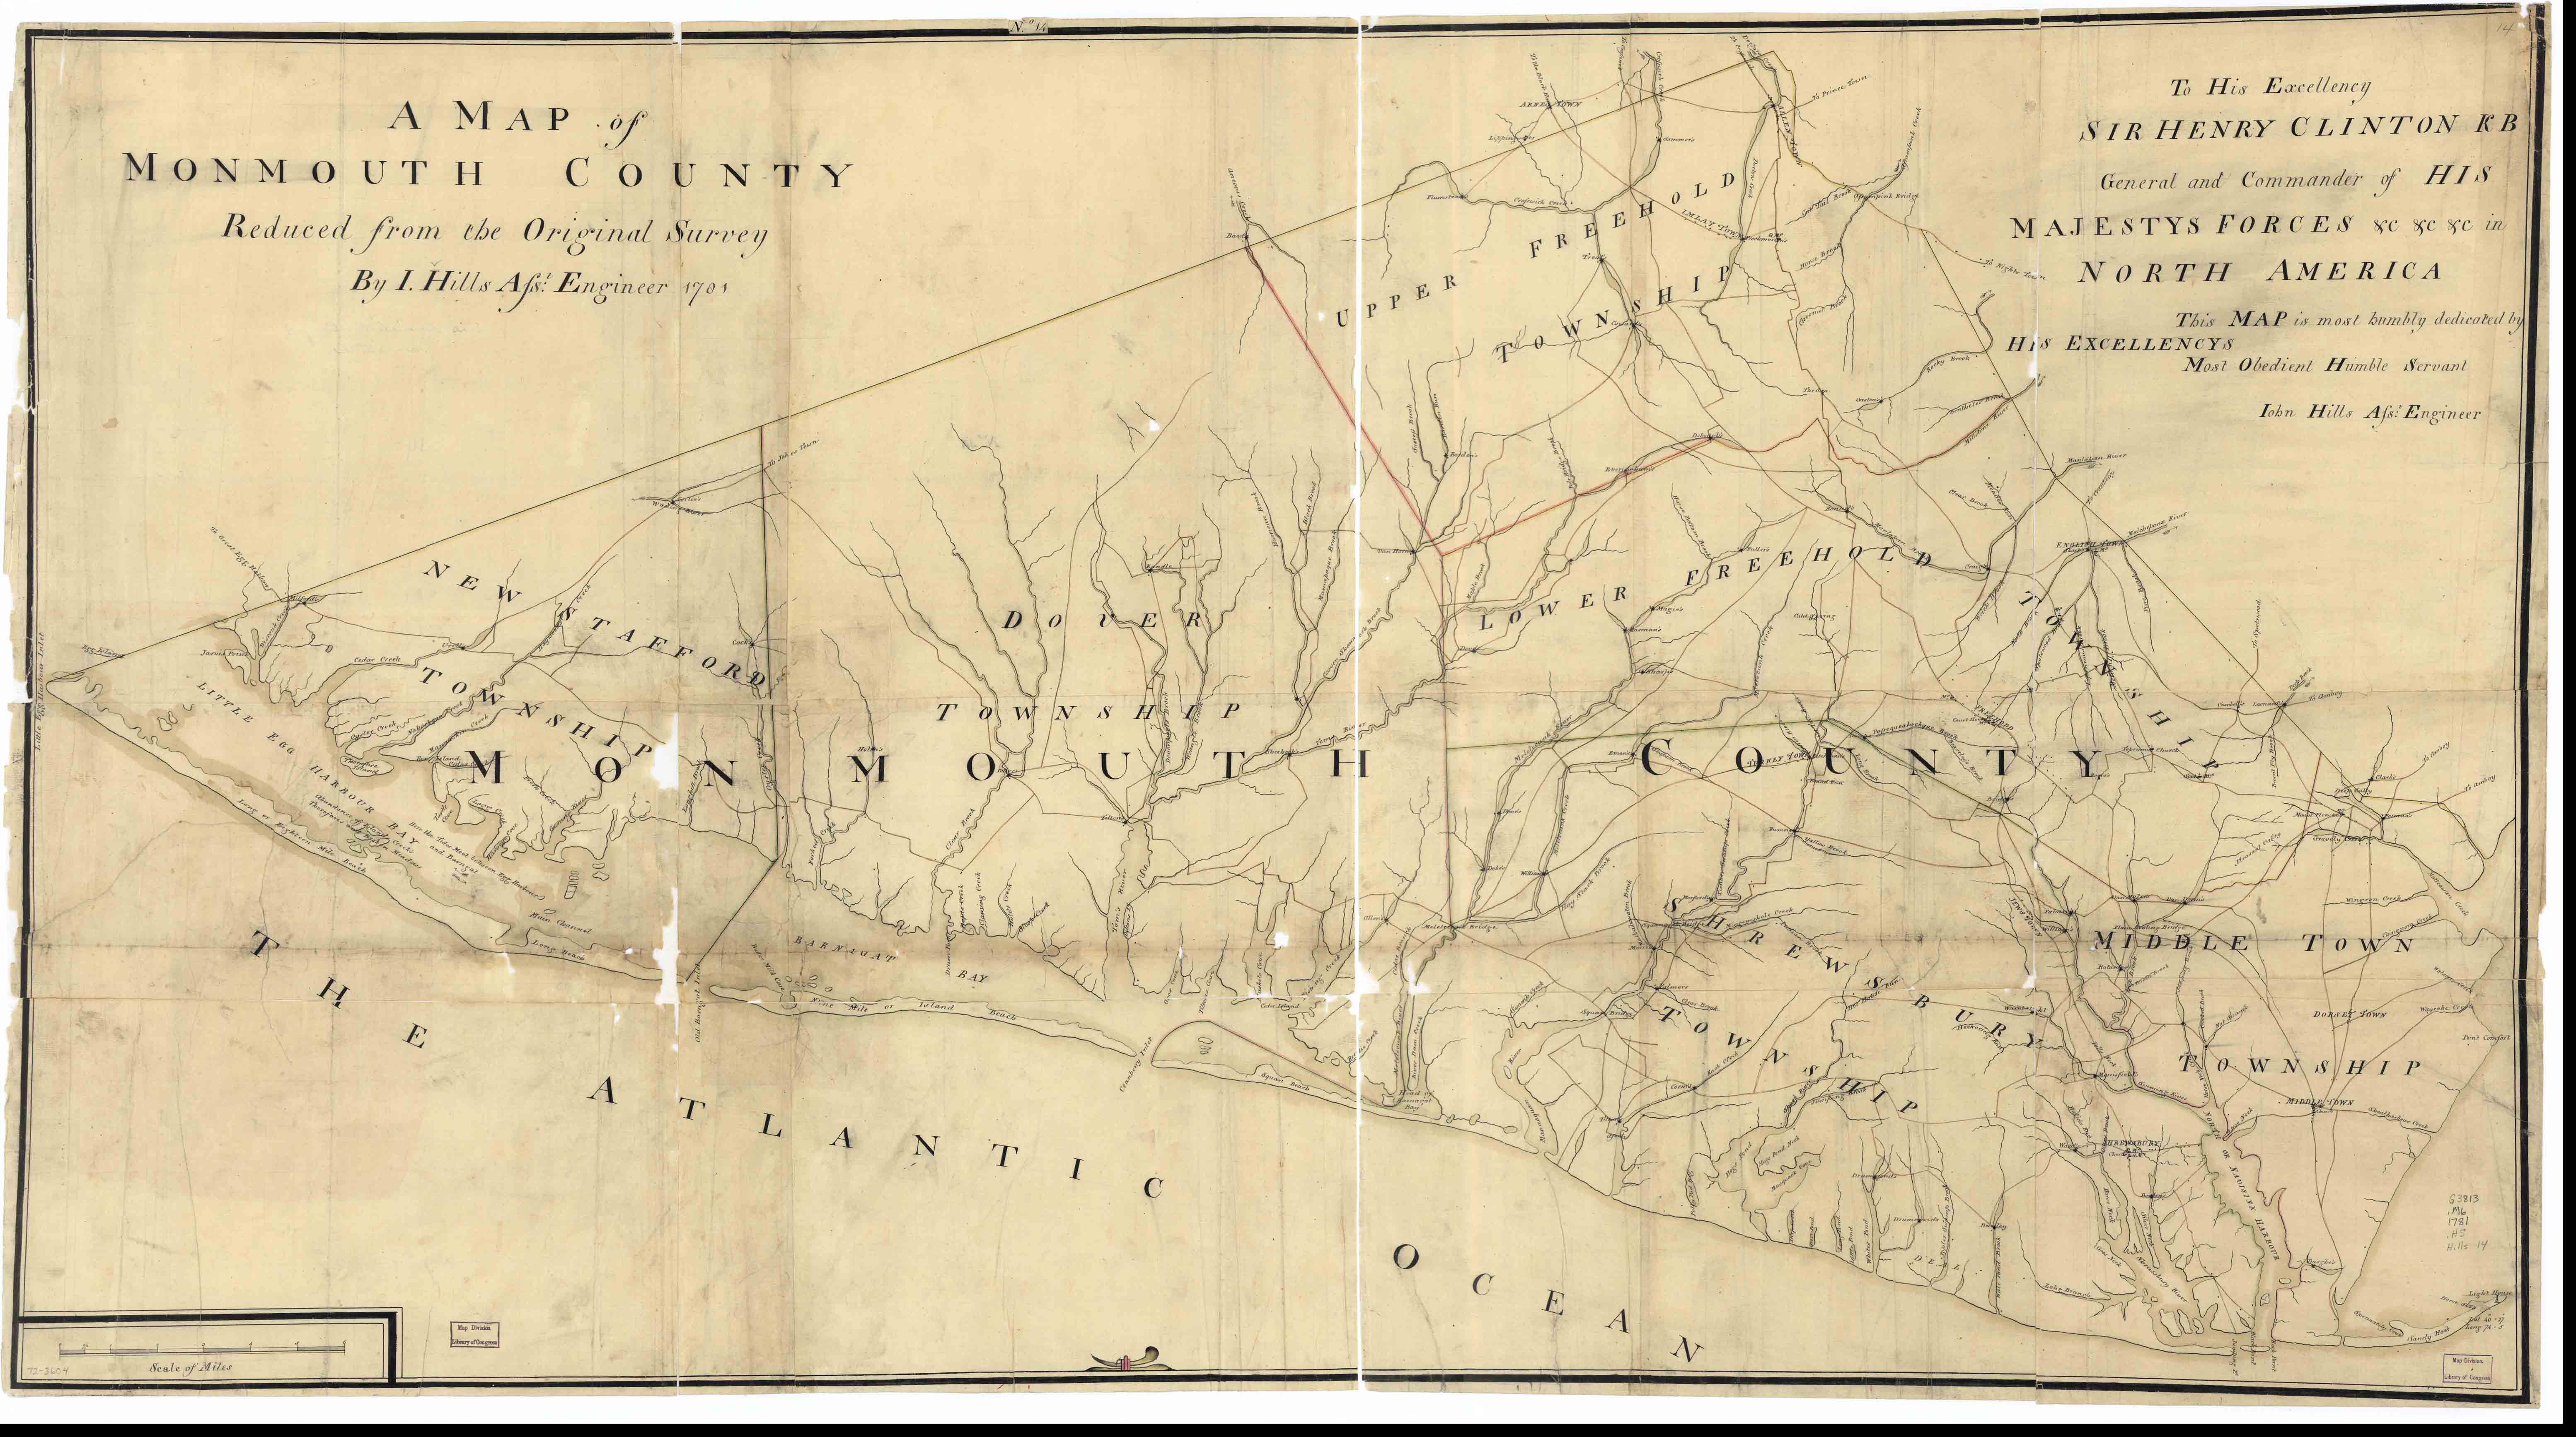 Revolutionary war era maps john hills map of monmouth county 1781 gumiabroncs Images